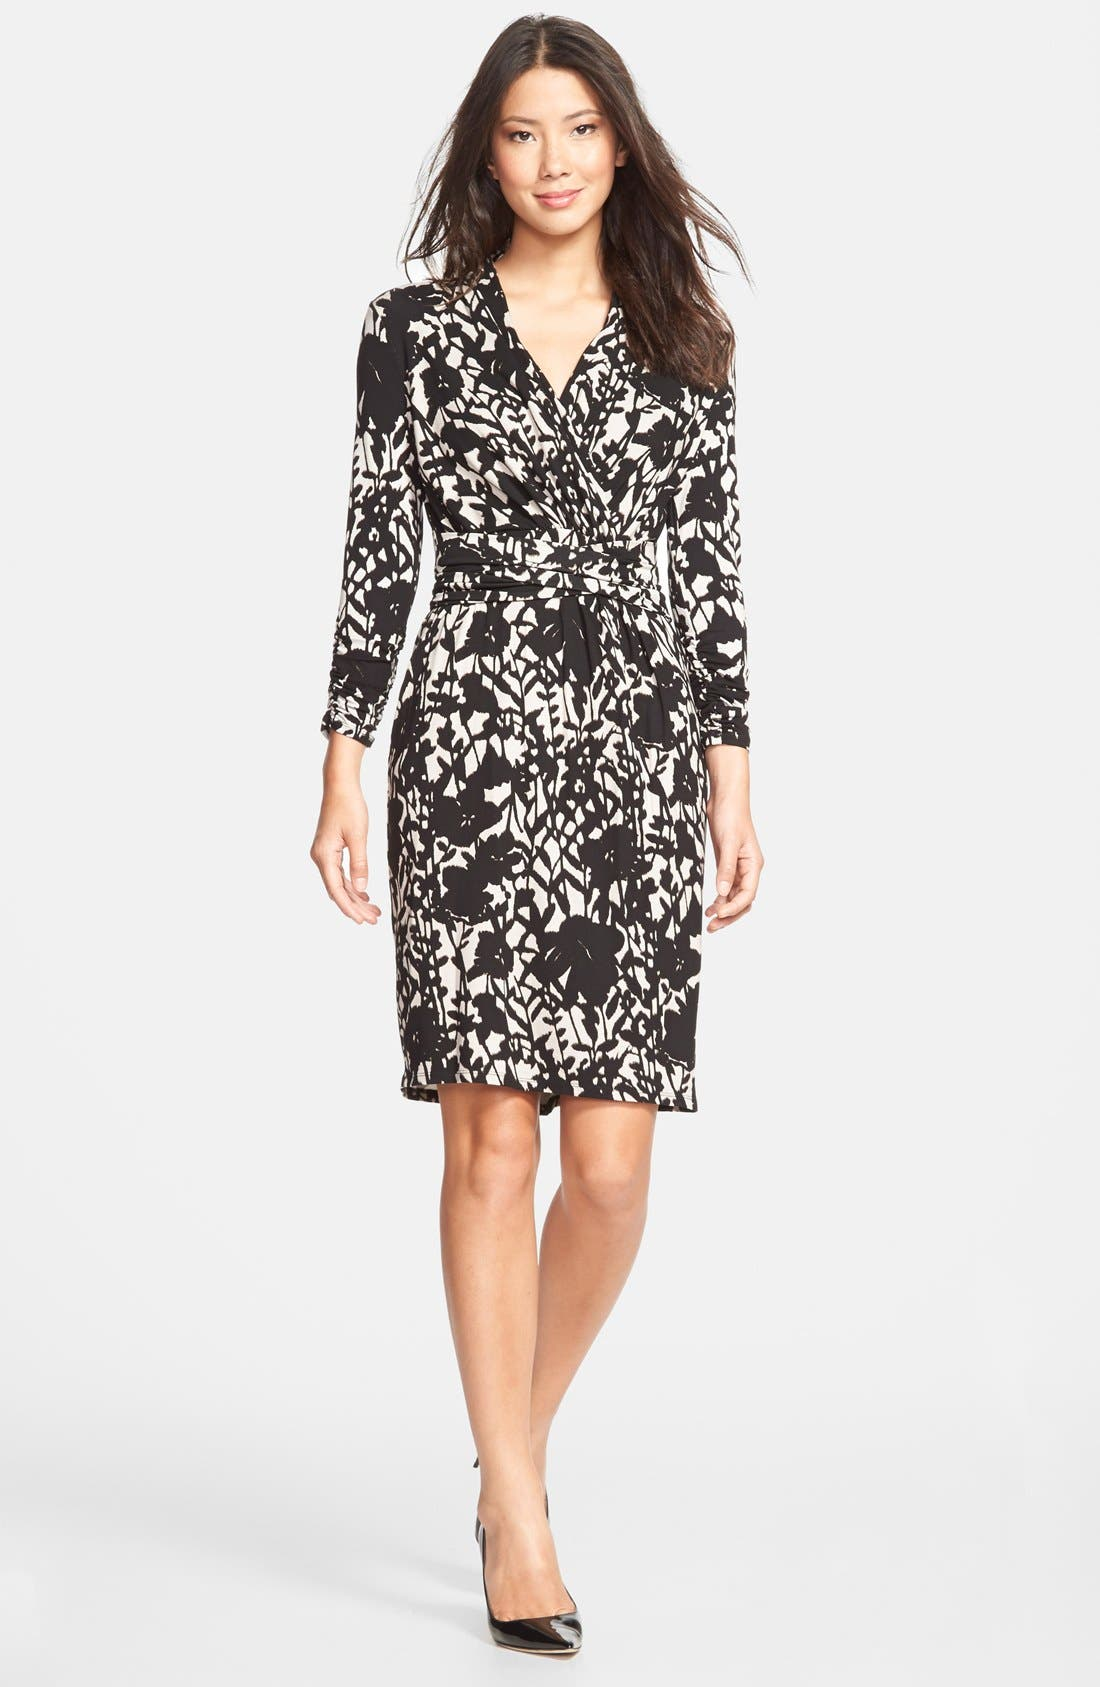 Main Image - Adrianna Papell Floral Print Faux Wrap Dress